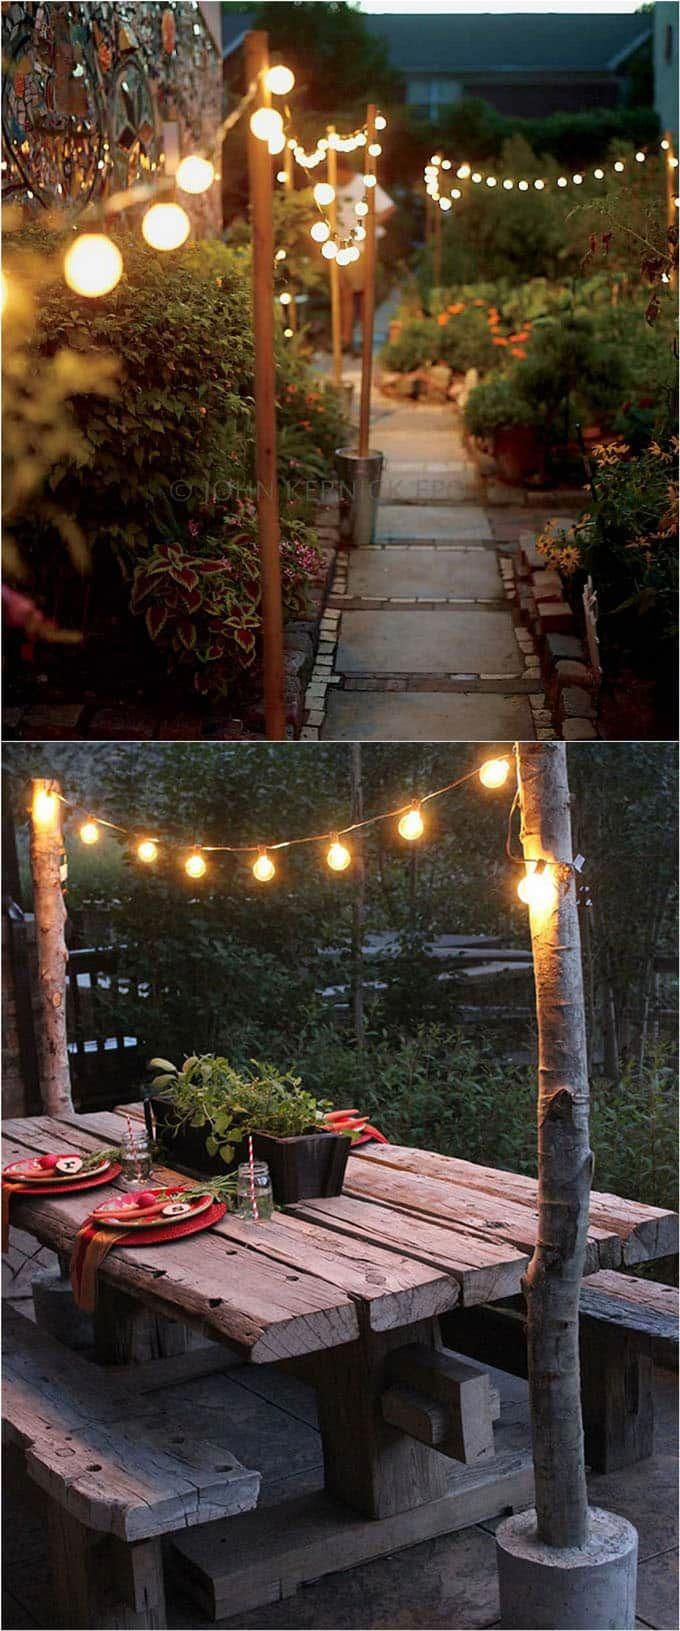 Amazing Collection Of 28 Stunning Yet Easy Diy Outdoor Lights Most Can Be Made In 1 Hour With Up Diy Outdoor Lighting Garden Path Lighting Backyard Lighting